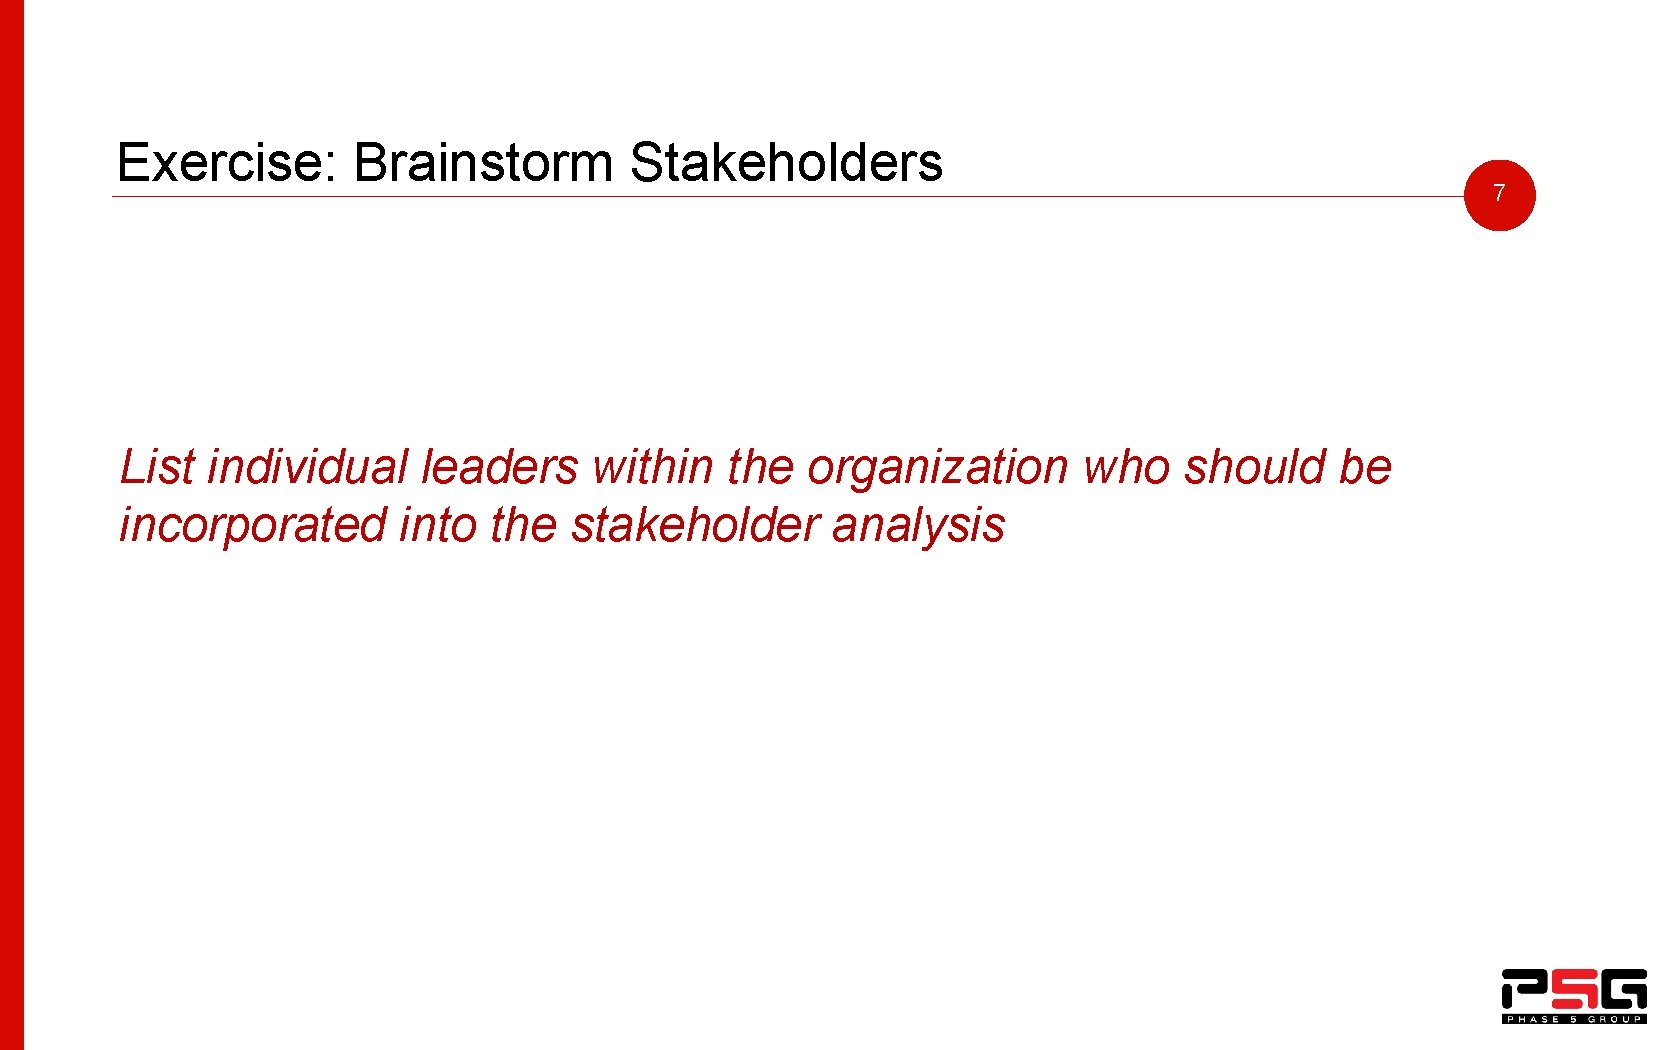 Exercise: Brainstorm Stakeholders List individual leaders within the organization who should be incorporated into